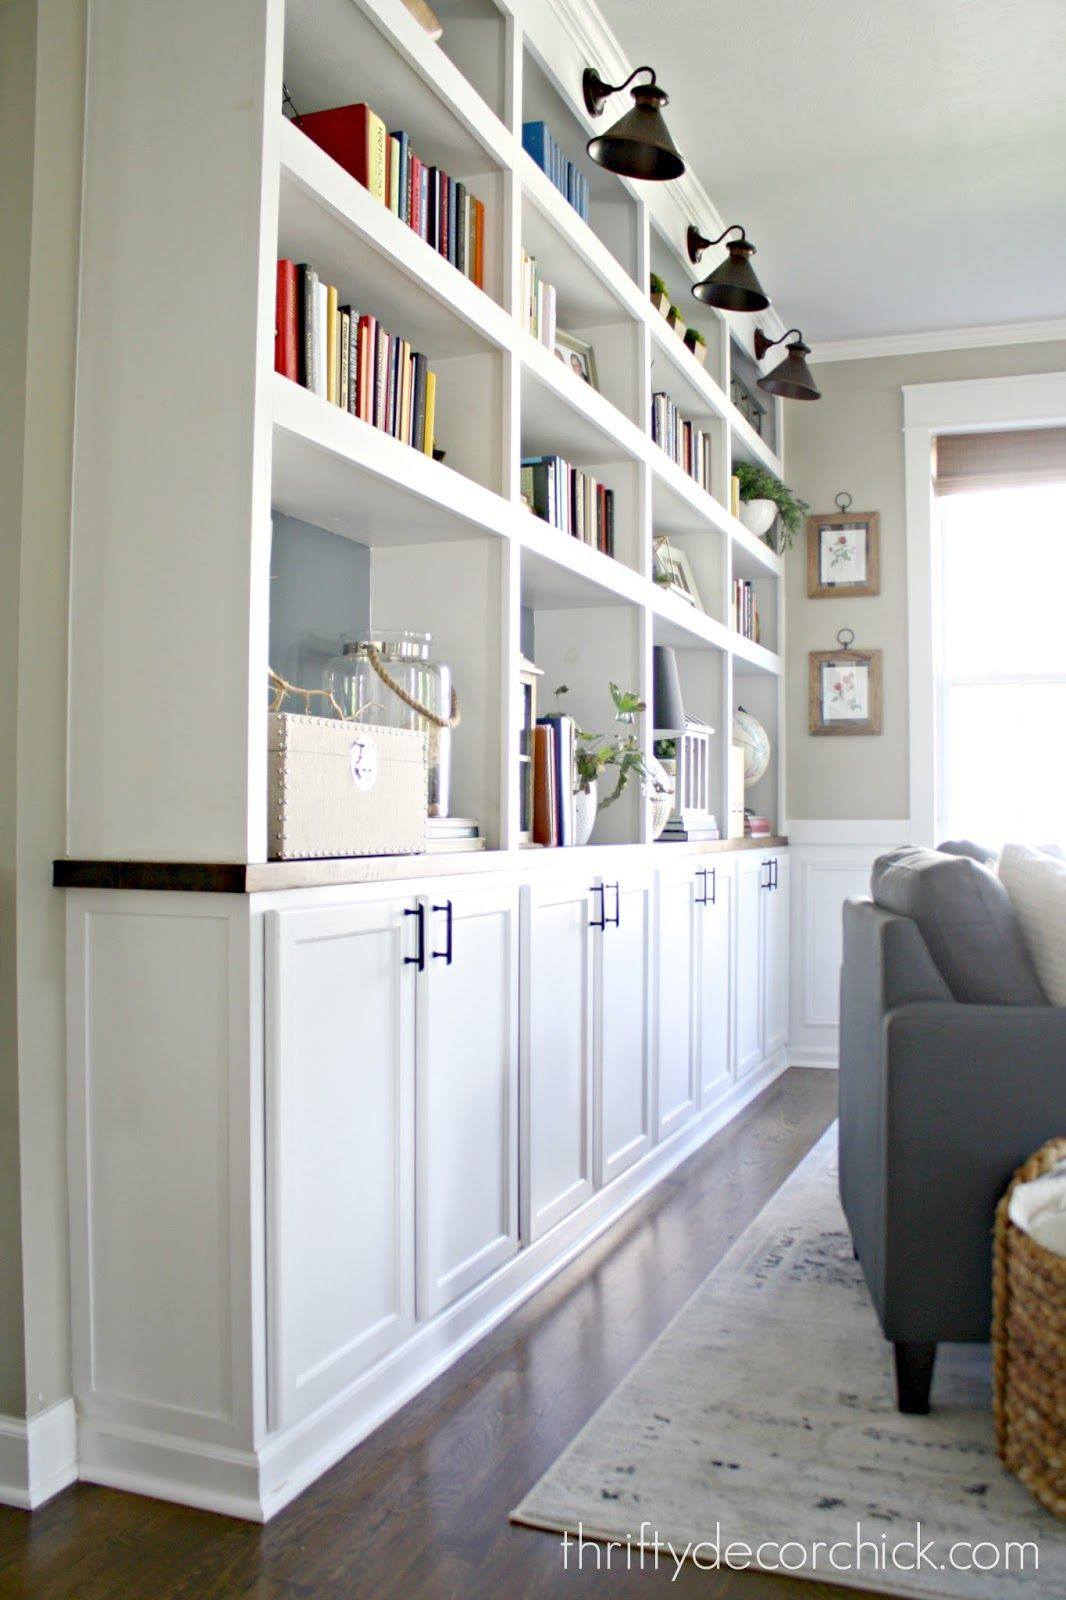 How to create custom built ins with kitchen cabinets | Pinterest ...